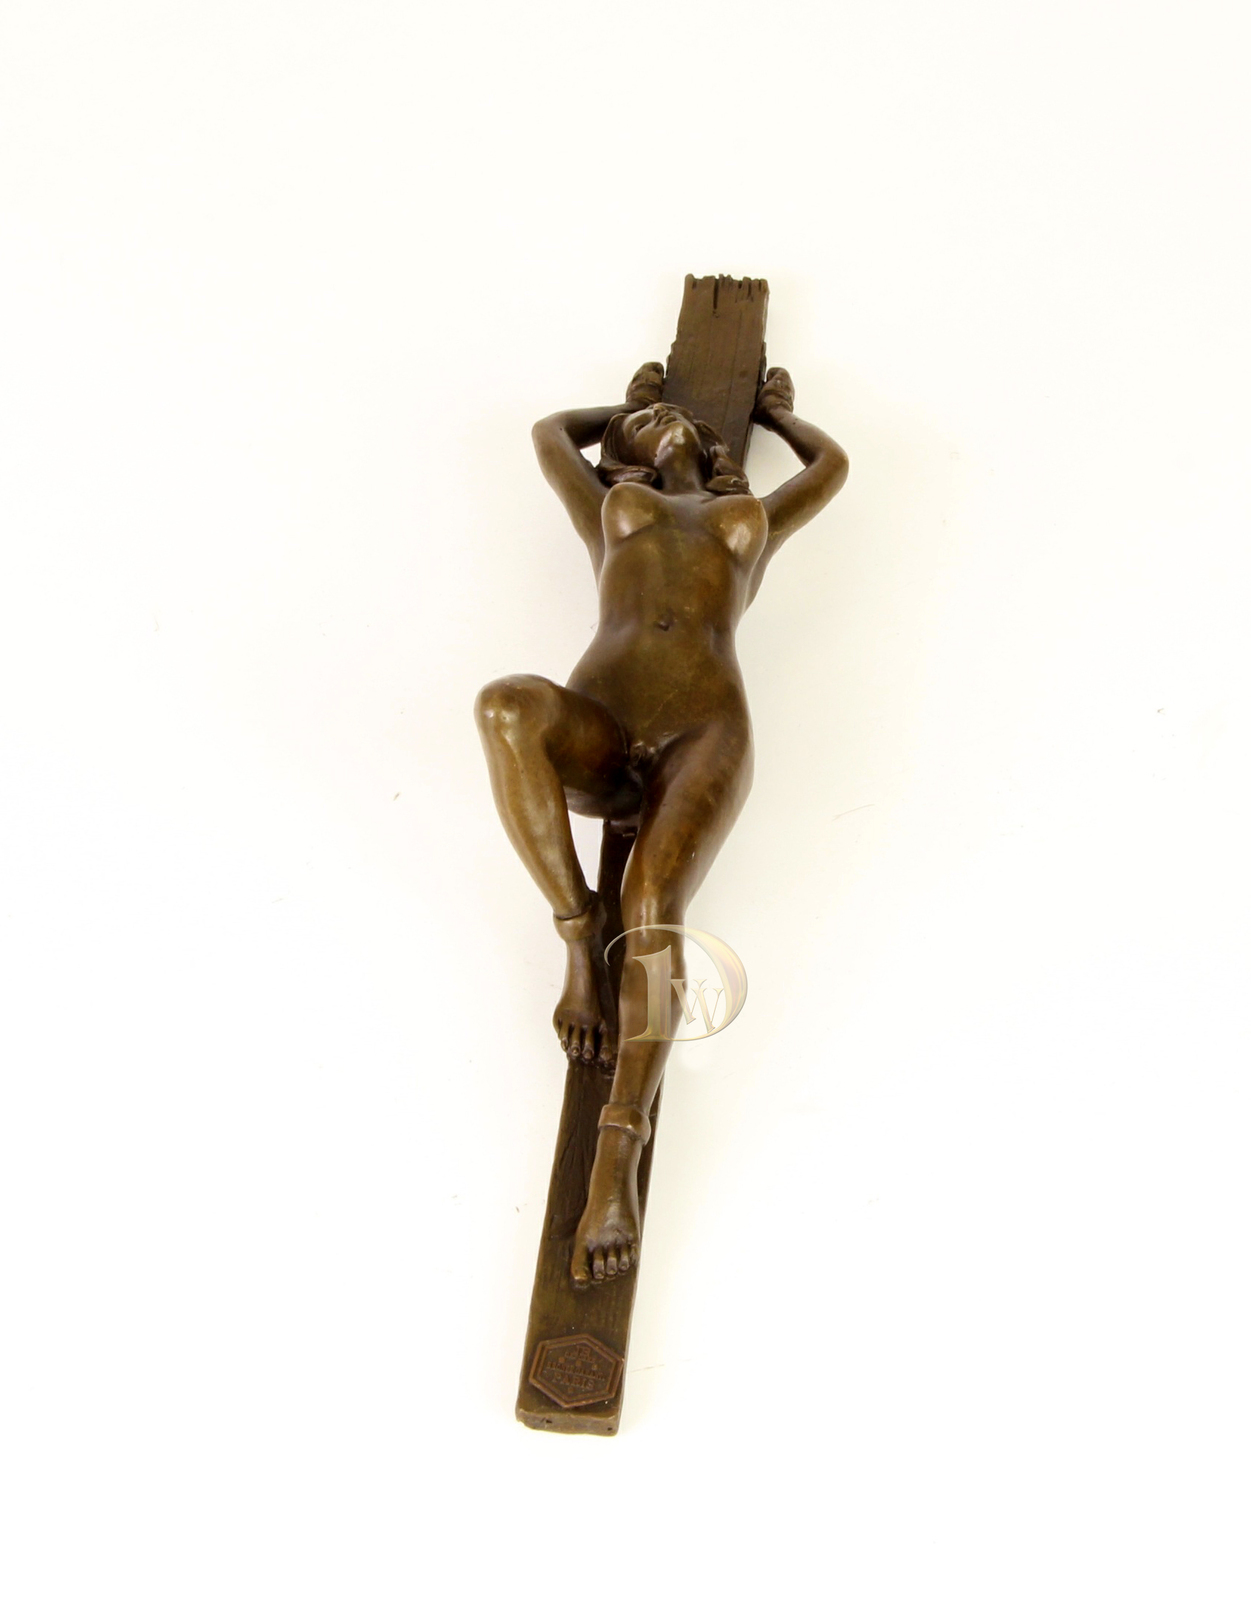 Antique Home Decor Bronze Sculpture Handcuffed female nude signed Free Air ship